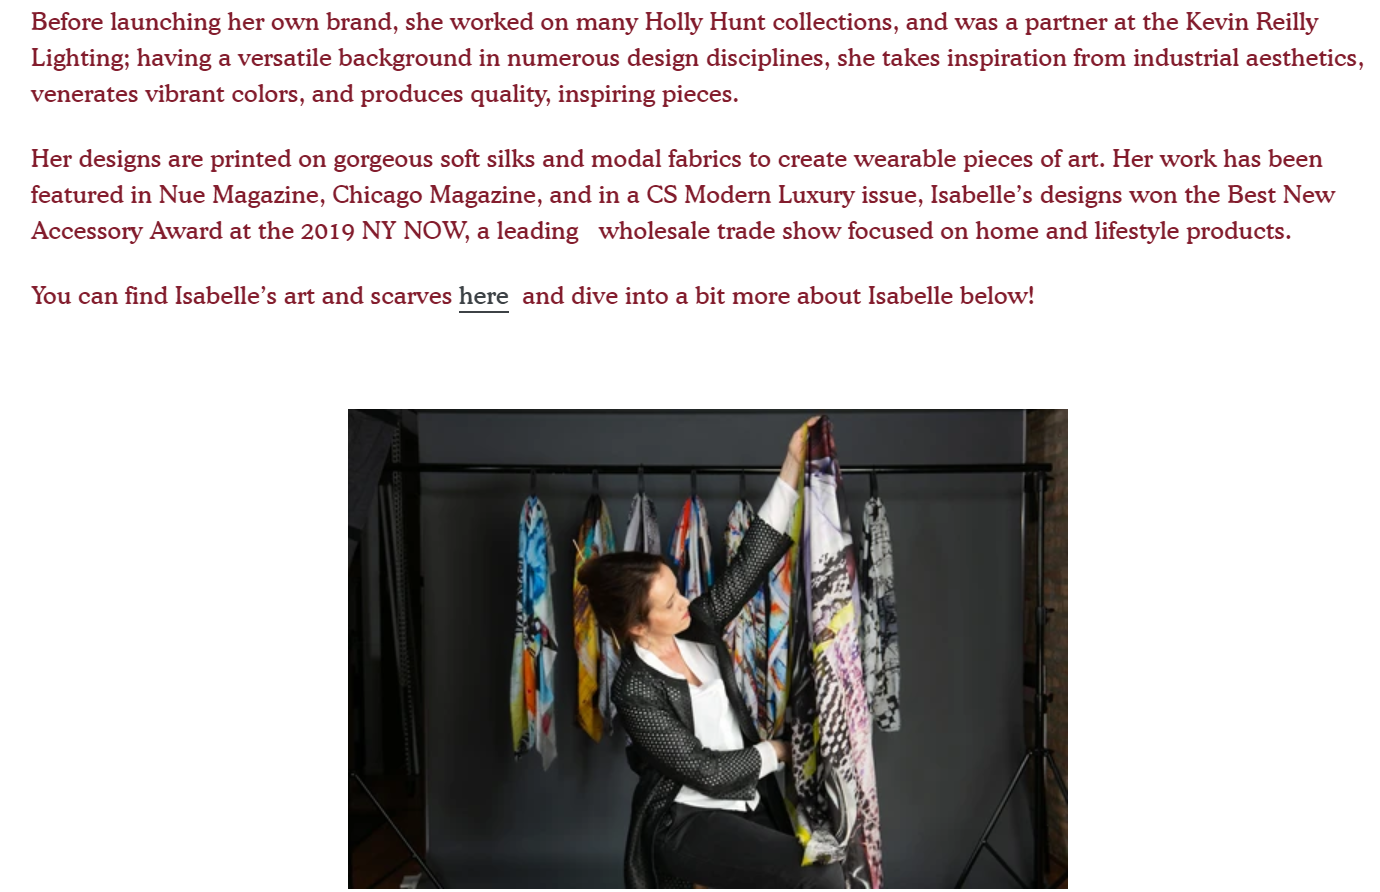 isabelle gougenheim designs art works article